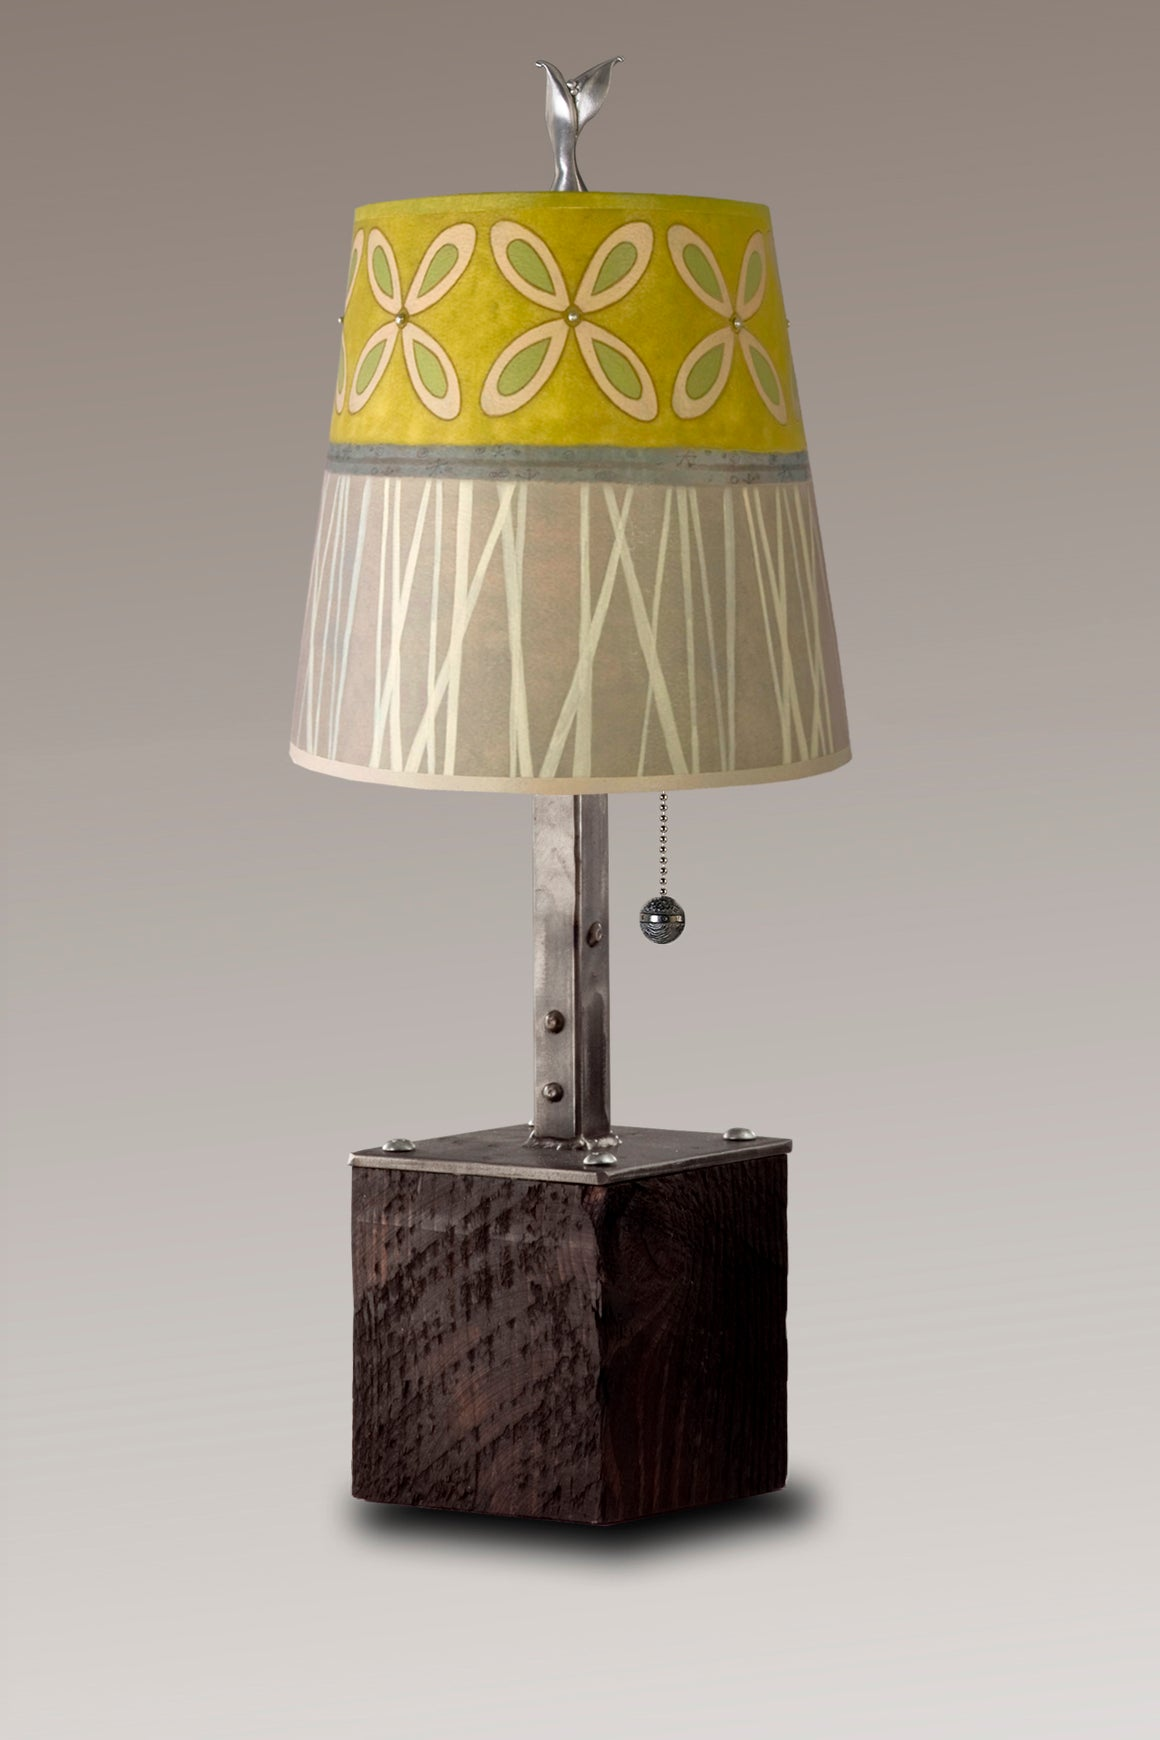 Steel Table Lamp on Reclaimed Wood with Small Drum Shade in Kiwi